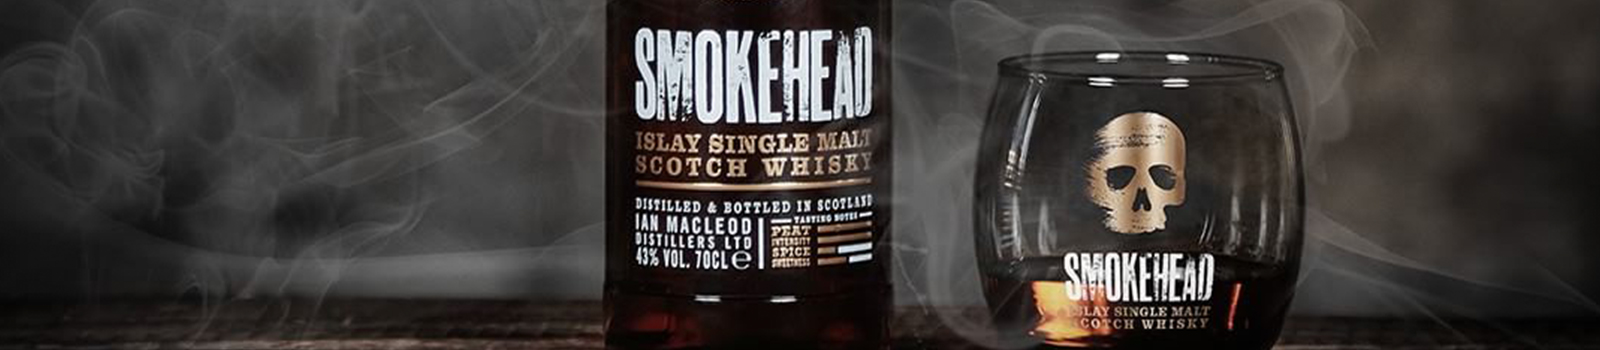 Smokehead Whisky, Ian Macleod, Trajectory Beverage Partners